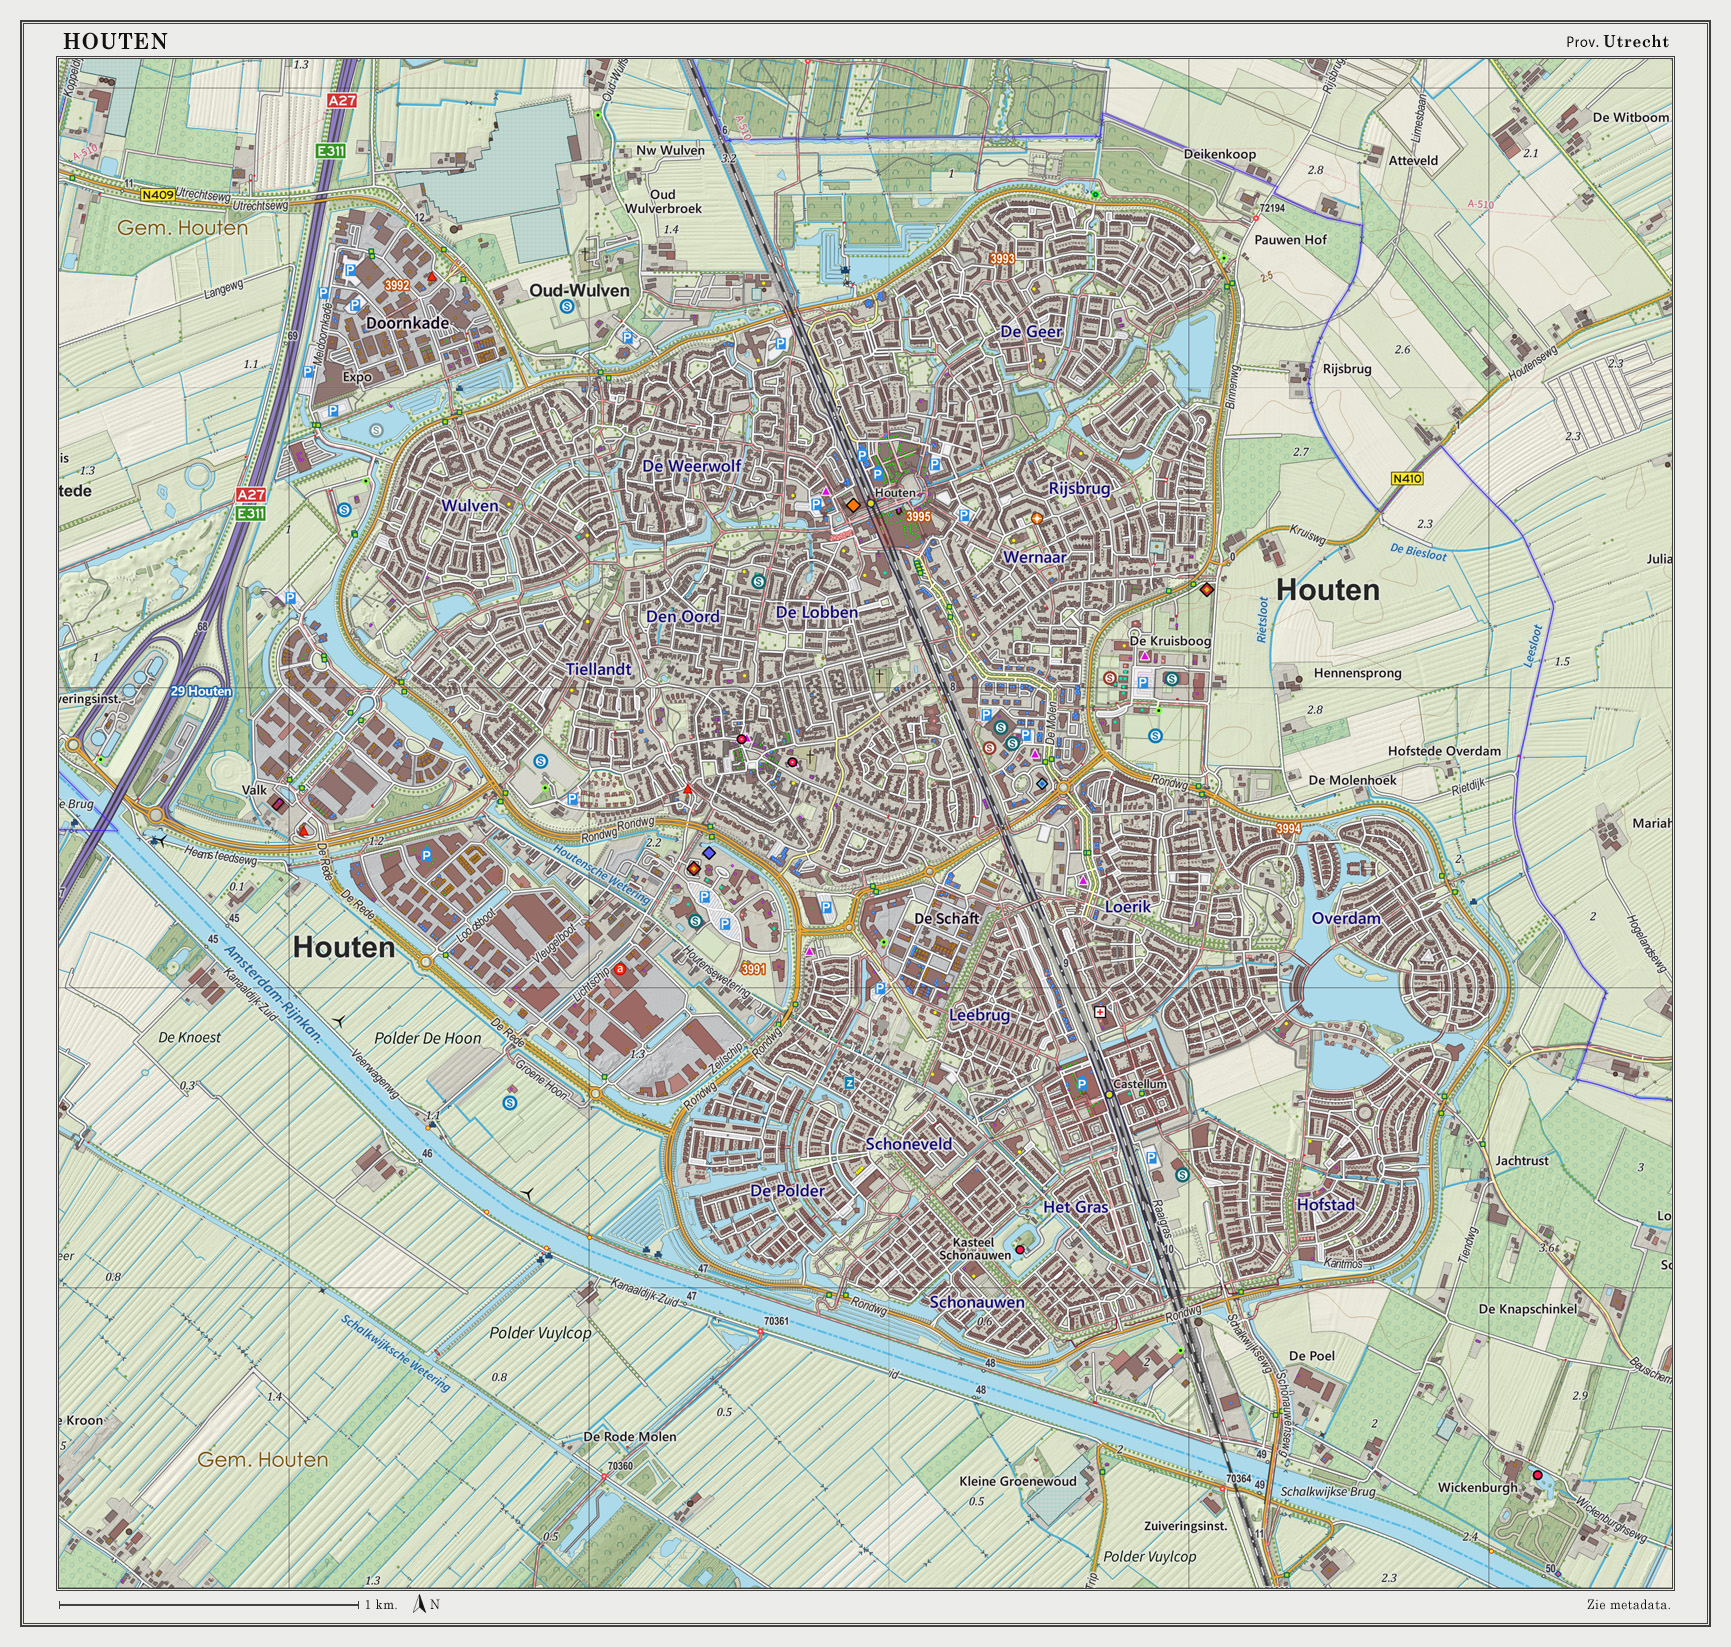 Dutch Topographic map of Houten (town), March 2014